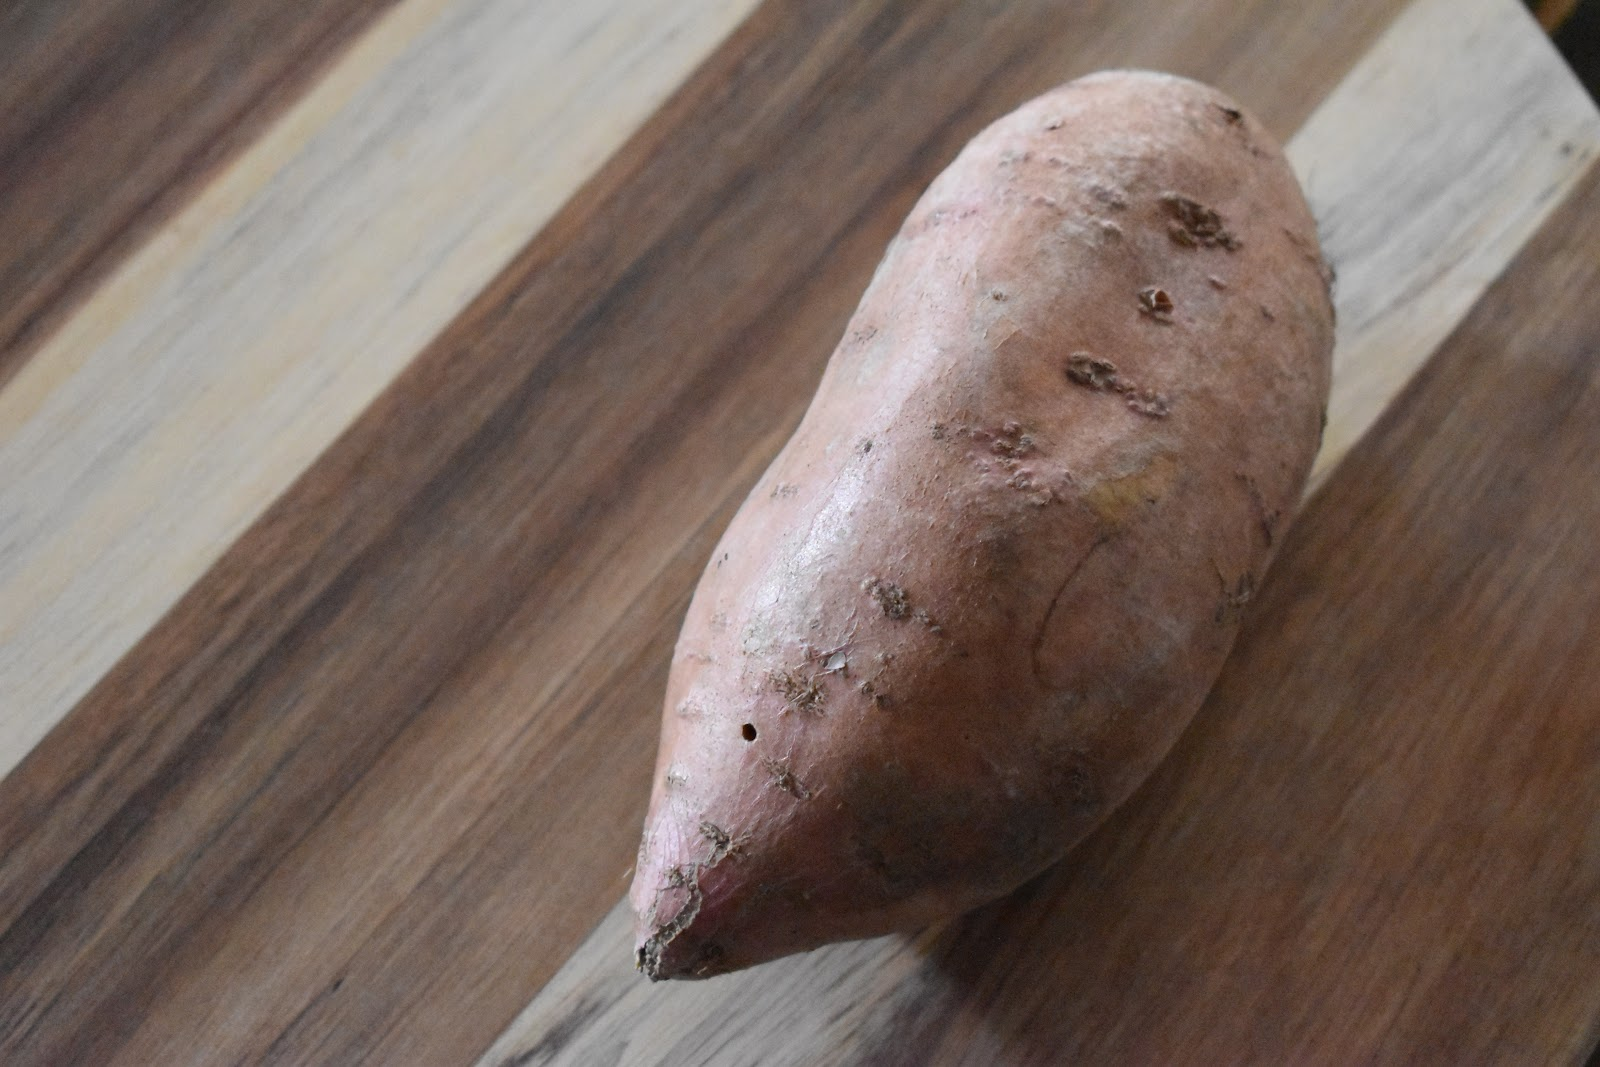 How to microwave a sweet potato. Healthy, quick and easy, low calorie